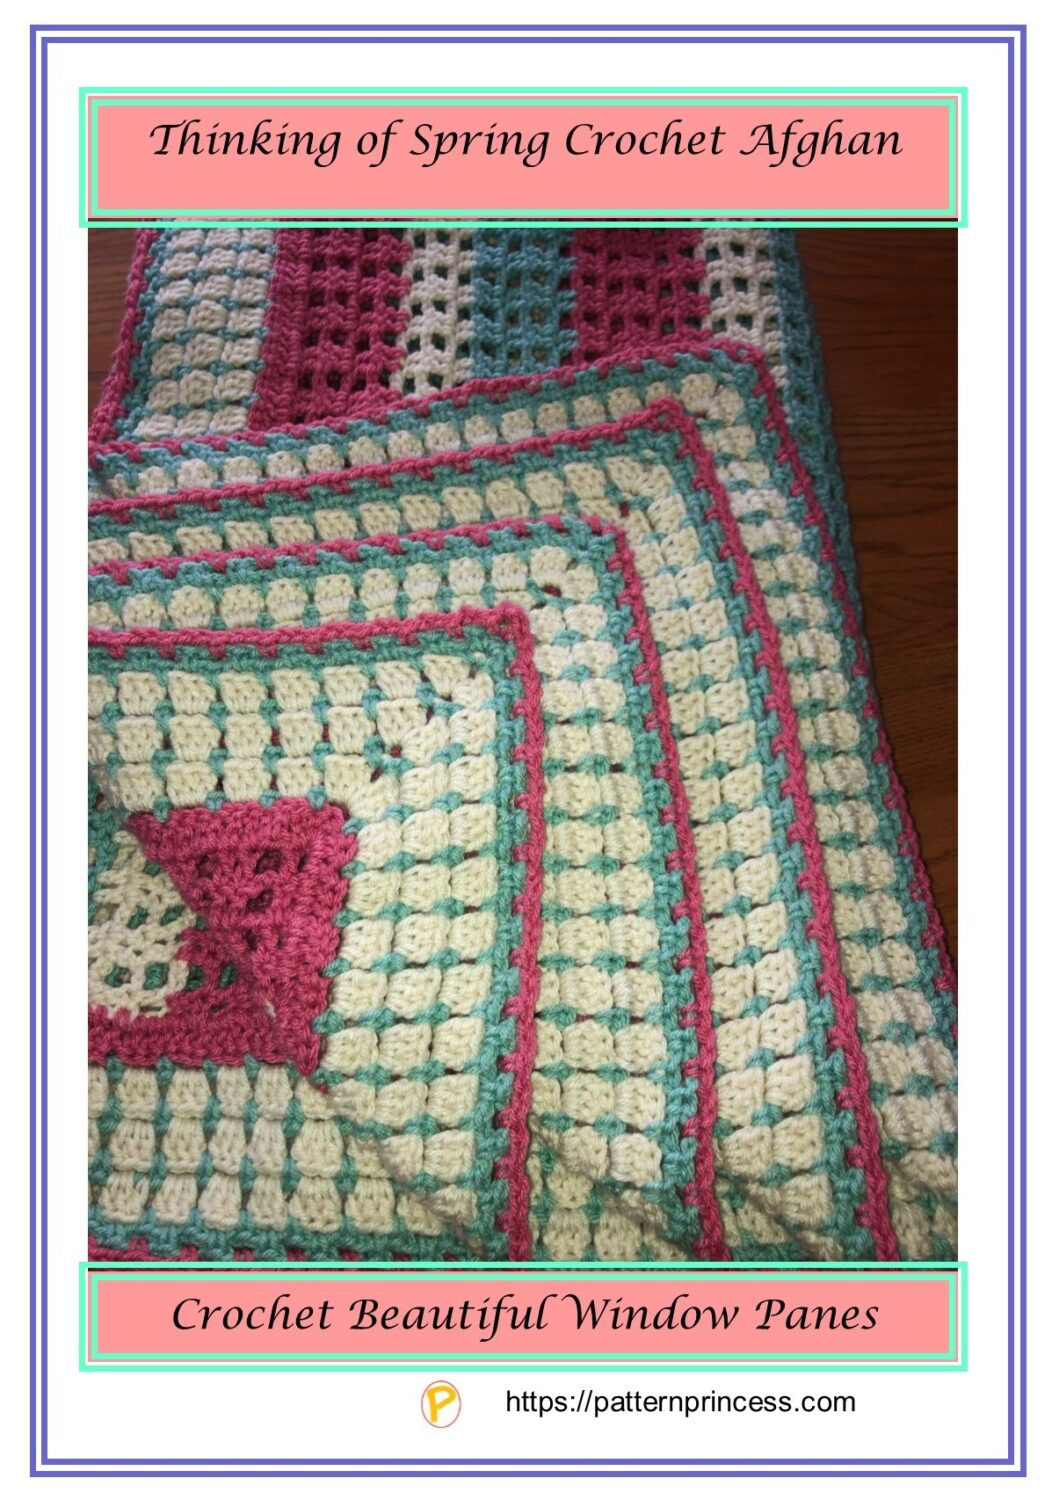 Thinking of Spring Crochet Afghan